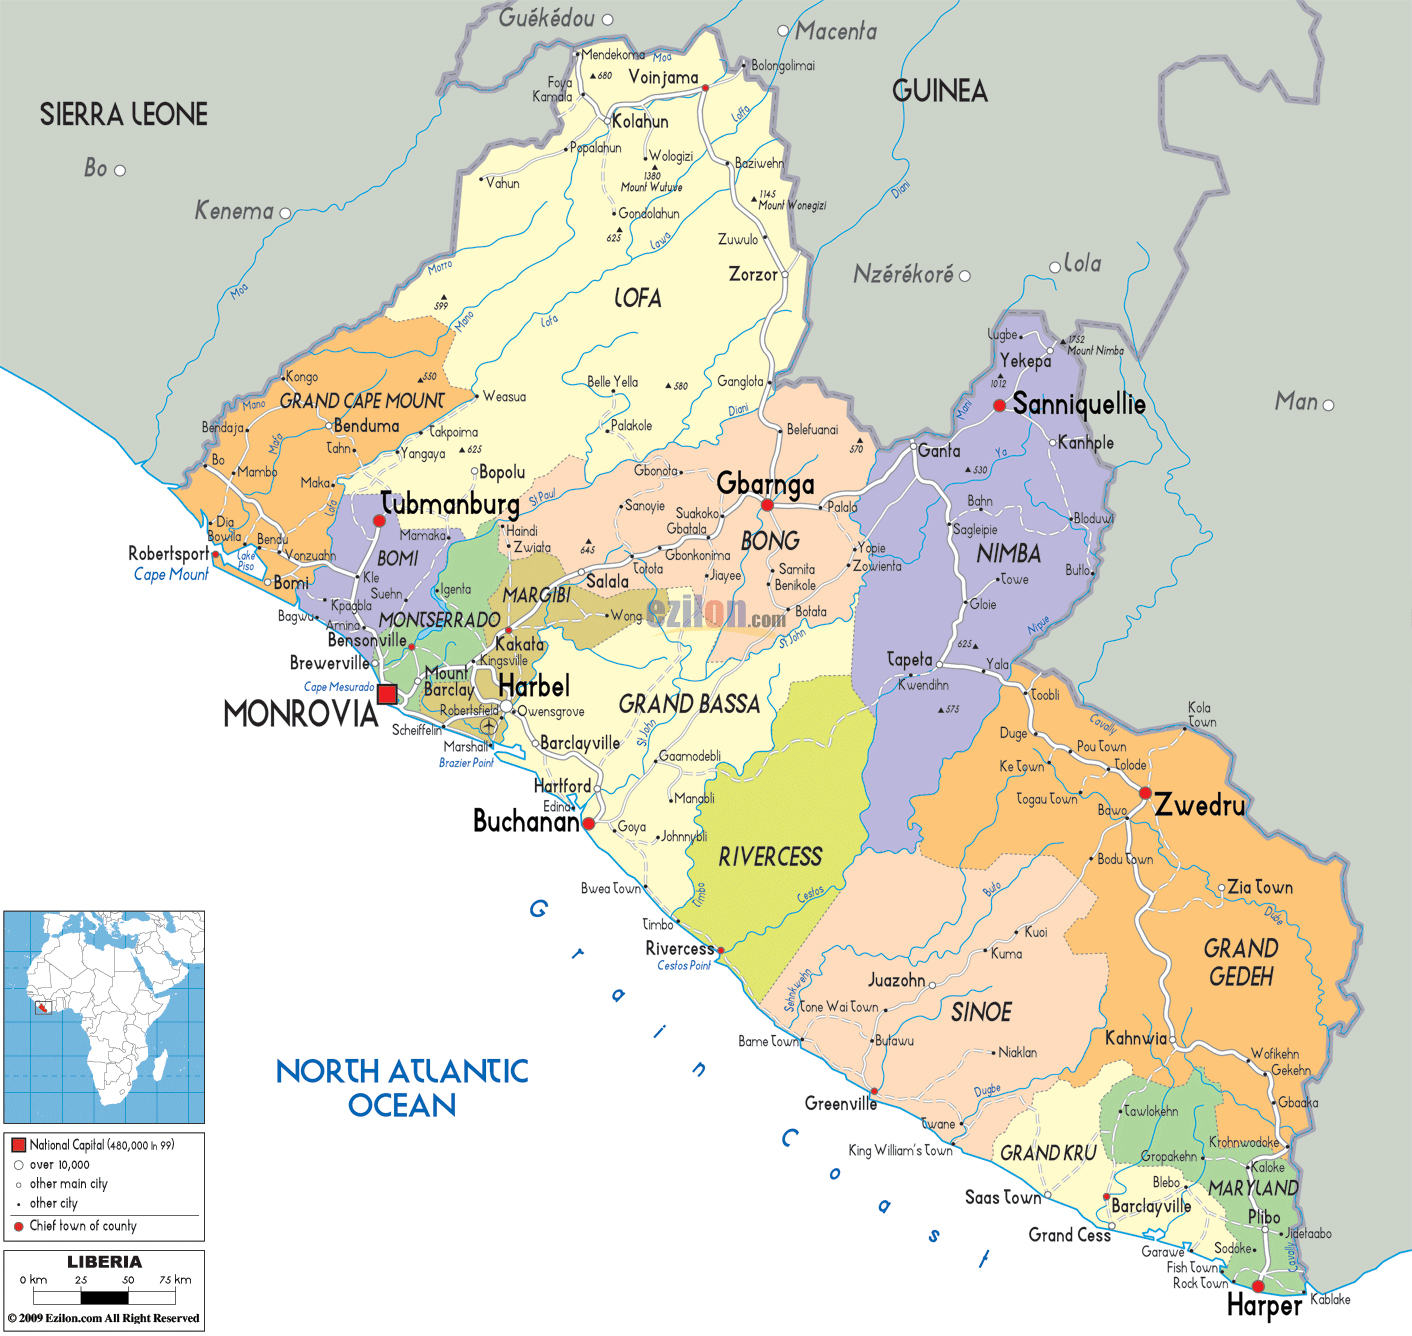 Maps of liberia map library maps of the world large detailed political and administrative map of liberia with roads and cities gumiabroncs Choice Image